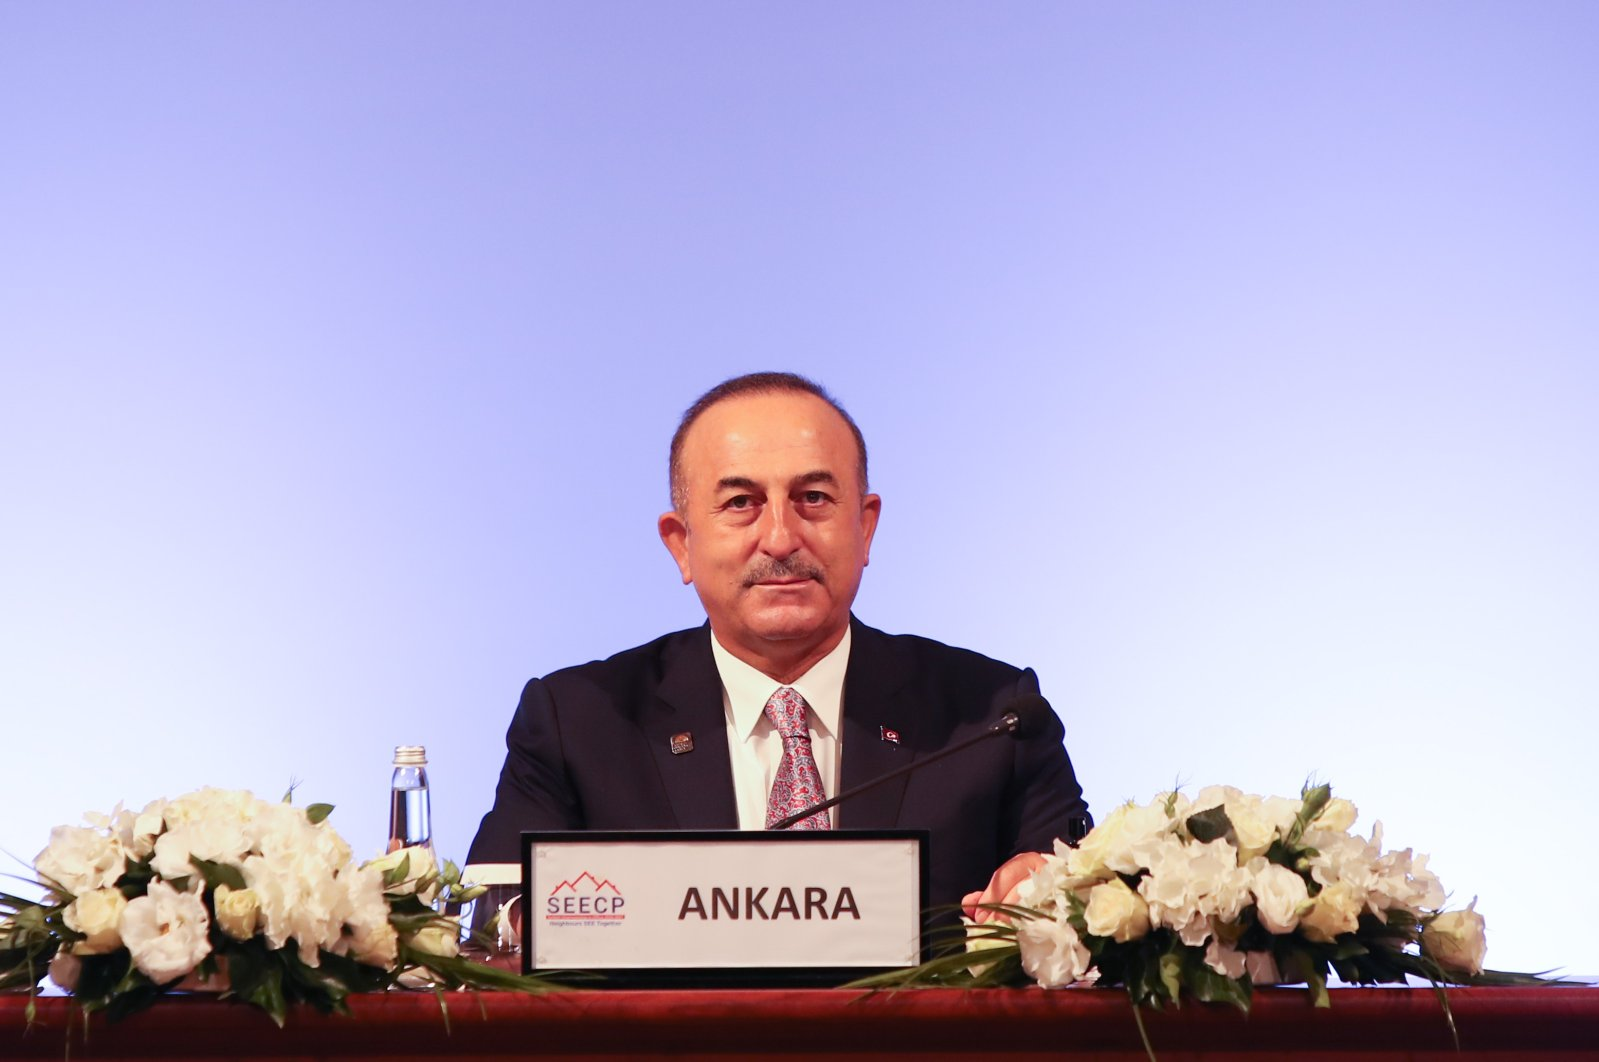 Turkish Foreign Minister Mevlüt Çavuşoğlu at the South East European Cooperation Process (SEECP) in southern Antalya province, Turkey, Nov. 6, 2020. (AA Photo)